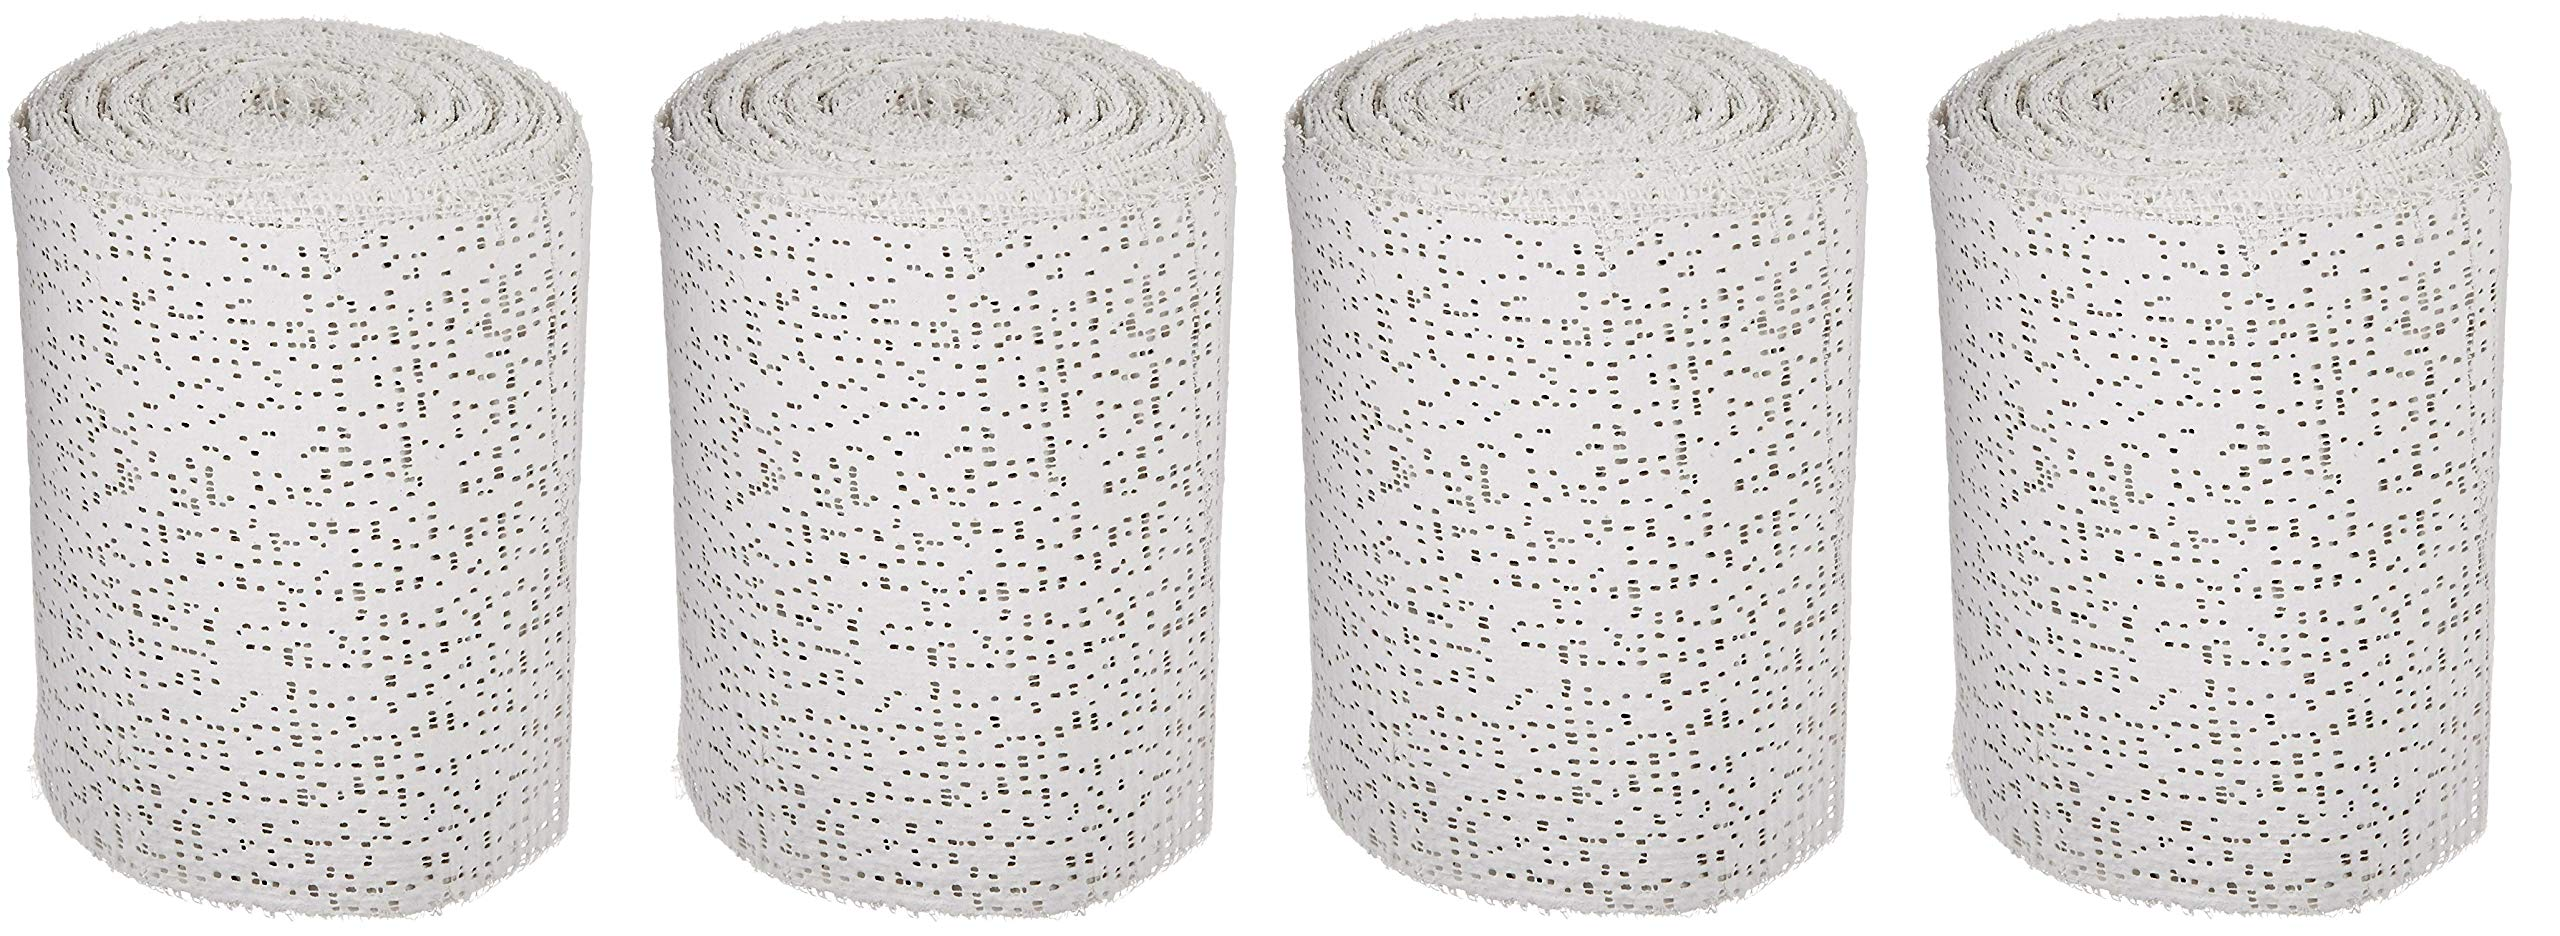 Sax Professional Plaster Wrap Roll, 4 Inch x 180 Feet, White, 20 Rolls (Pack of 4)